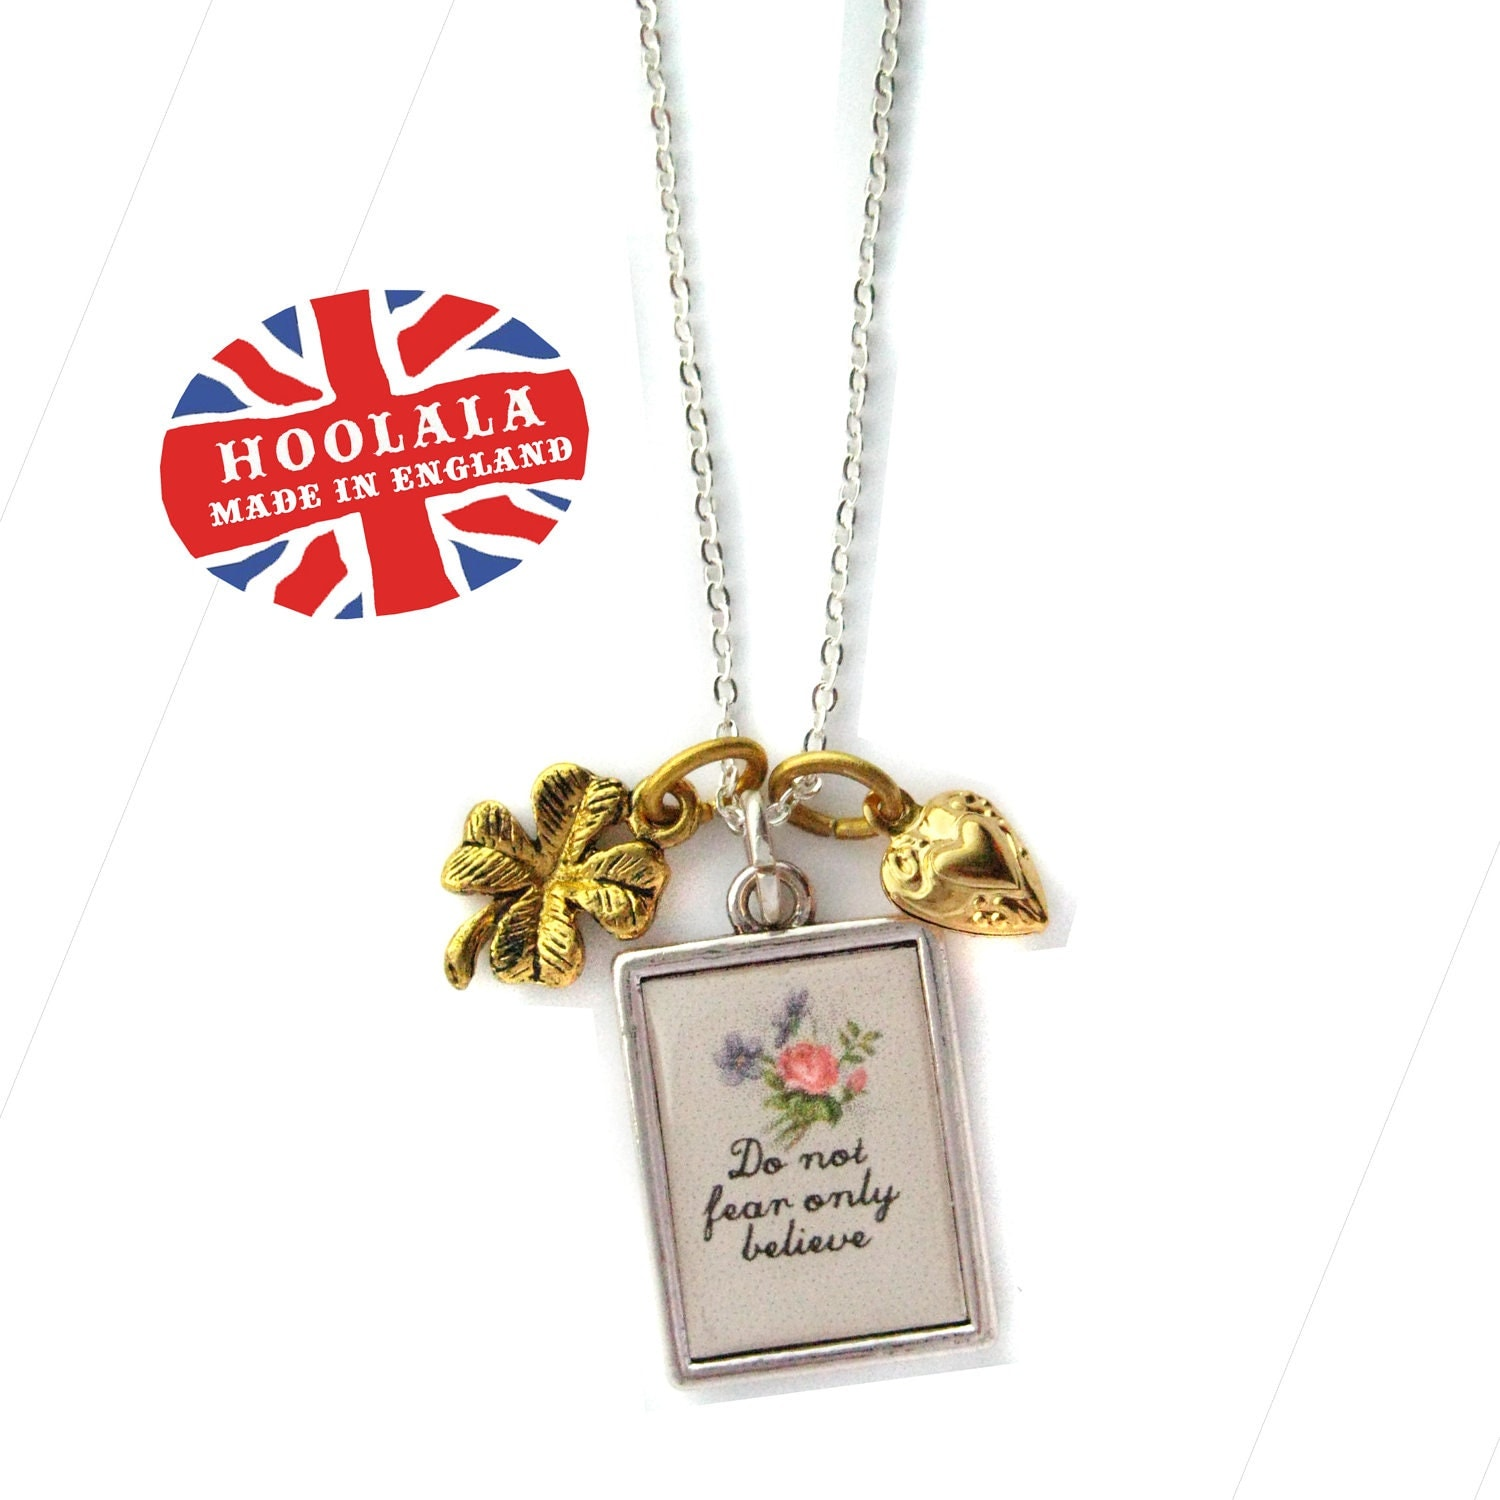 Do Not Fear Proverb Charms - Do Not Fear Only Believe  Charm Pendant Necklace from Hoolala